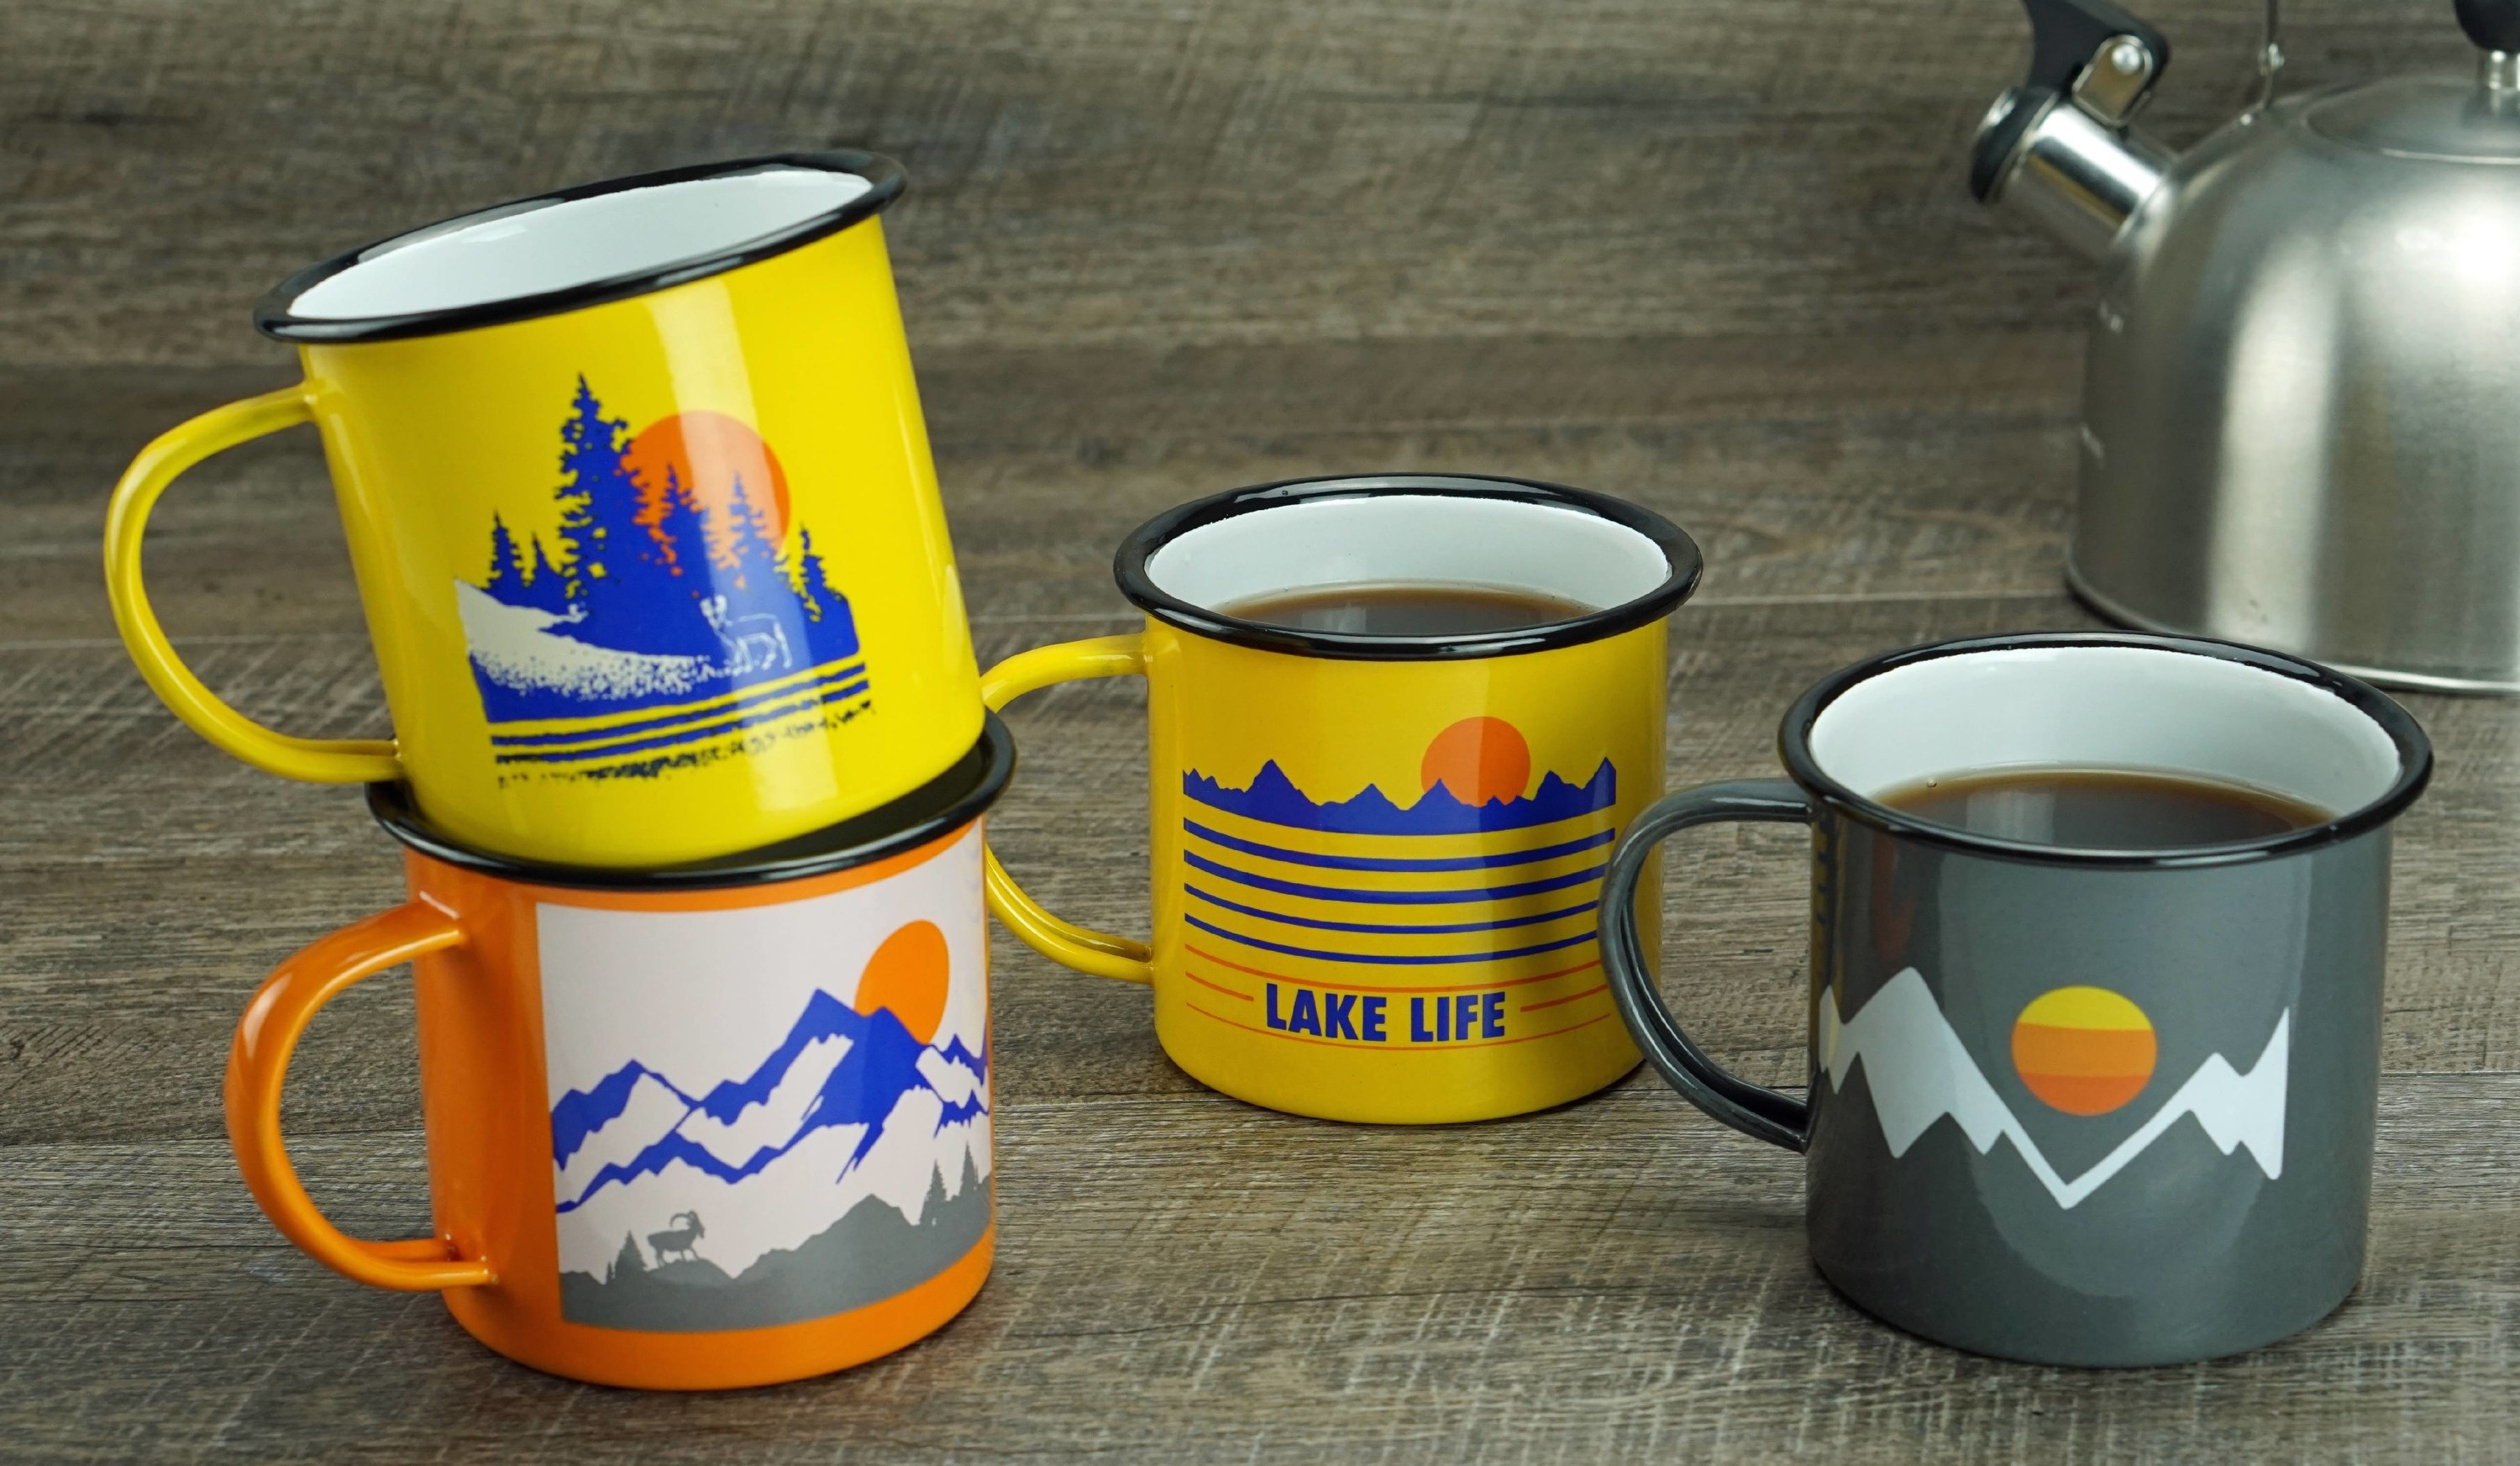 a set of mugs in yellow, orange, and gray with mountain designs on each